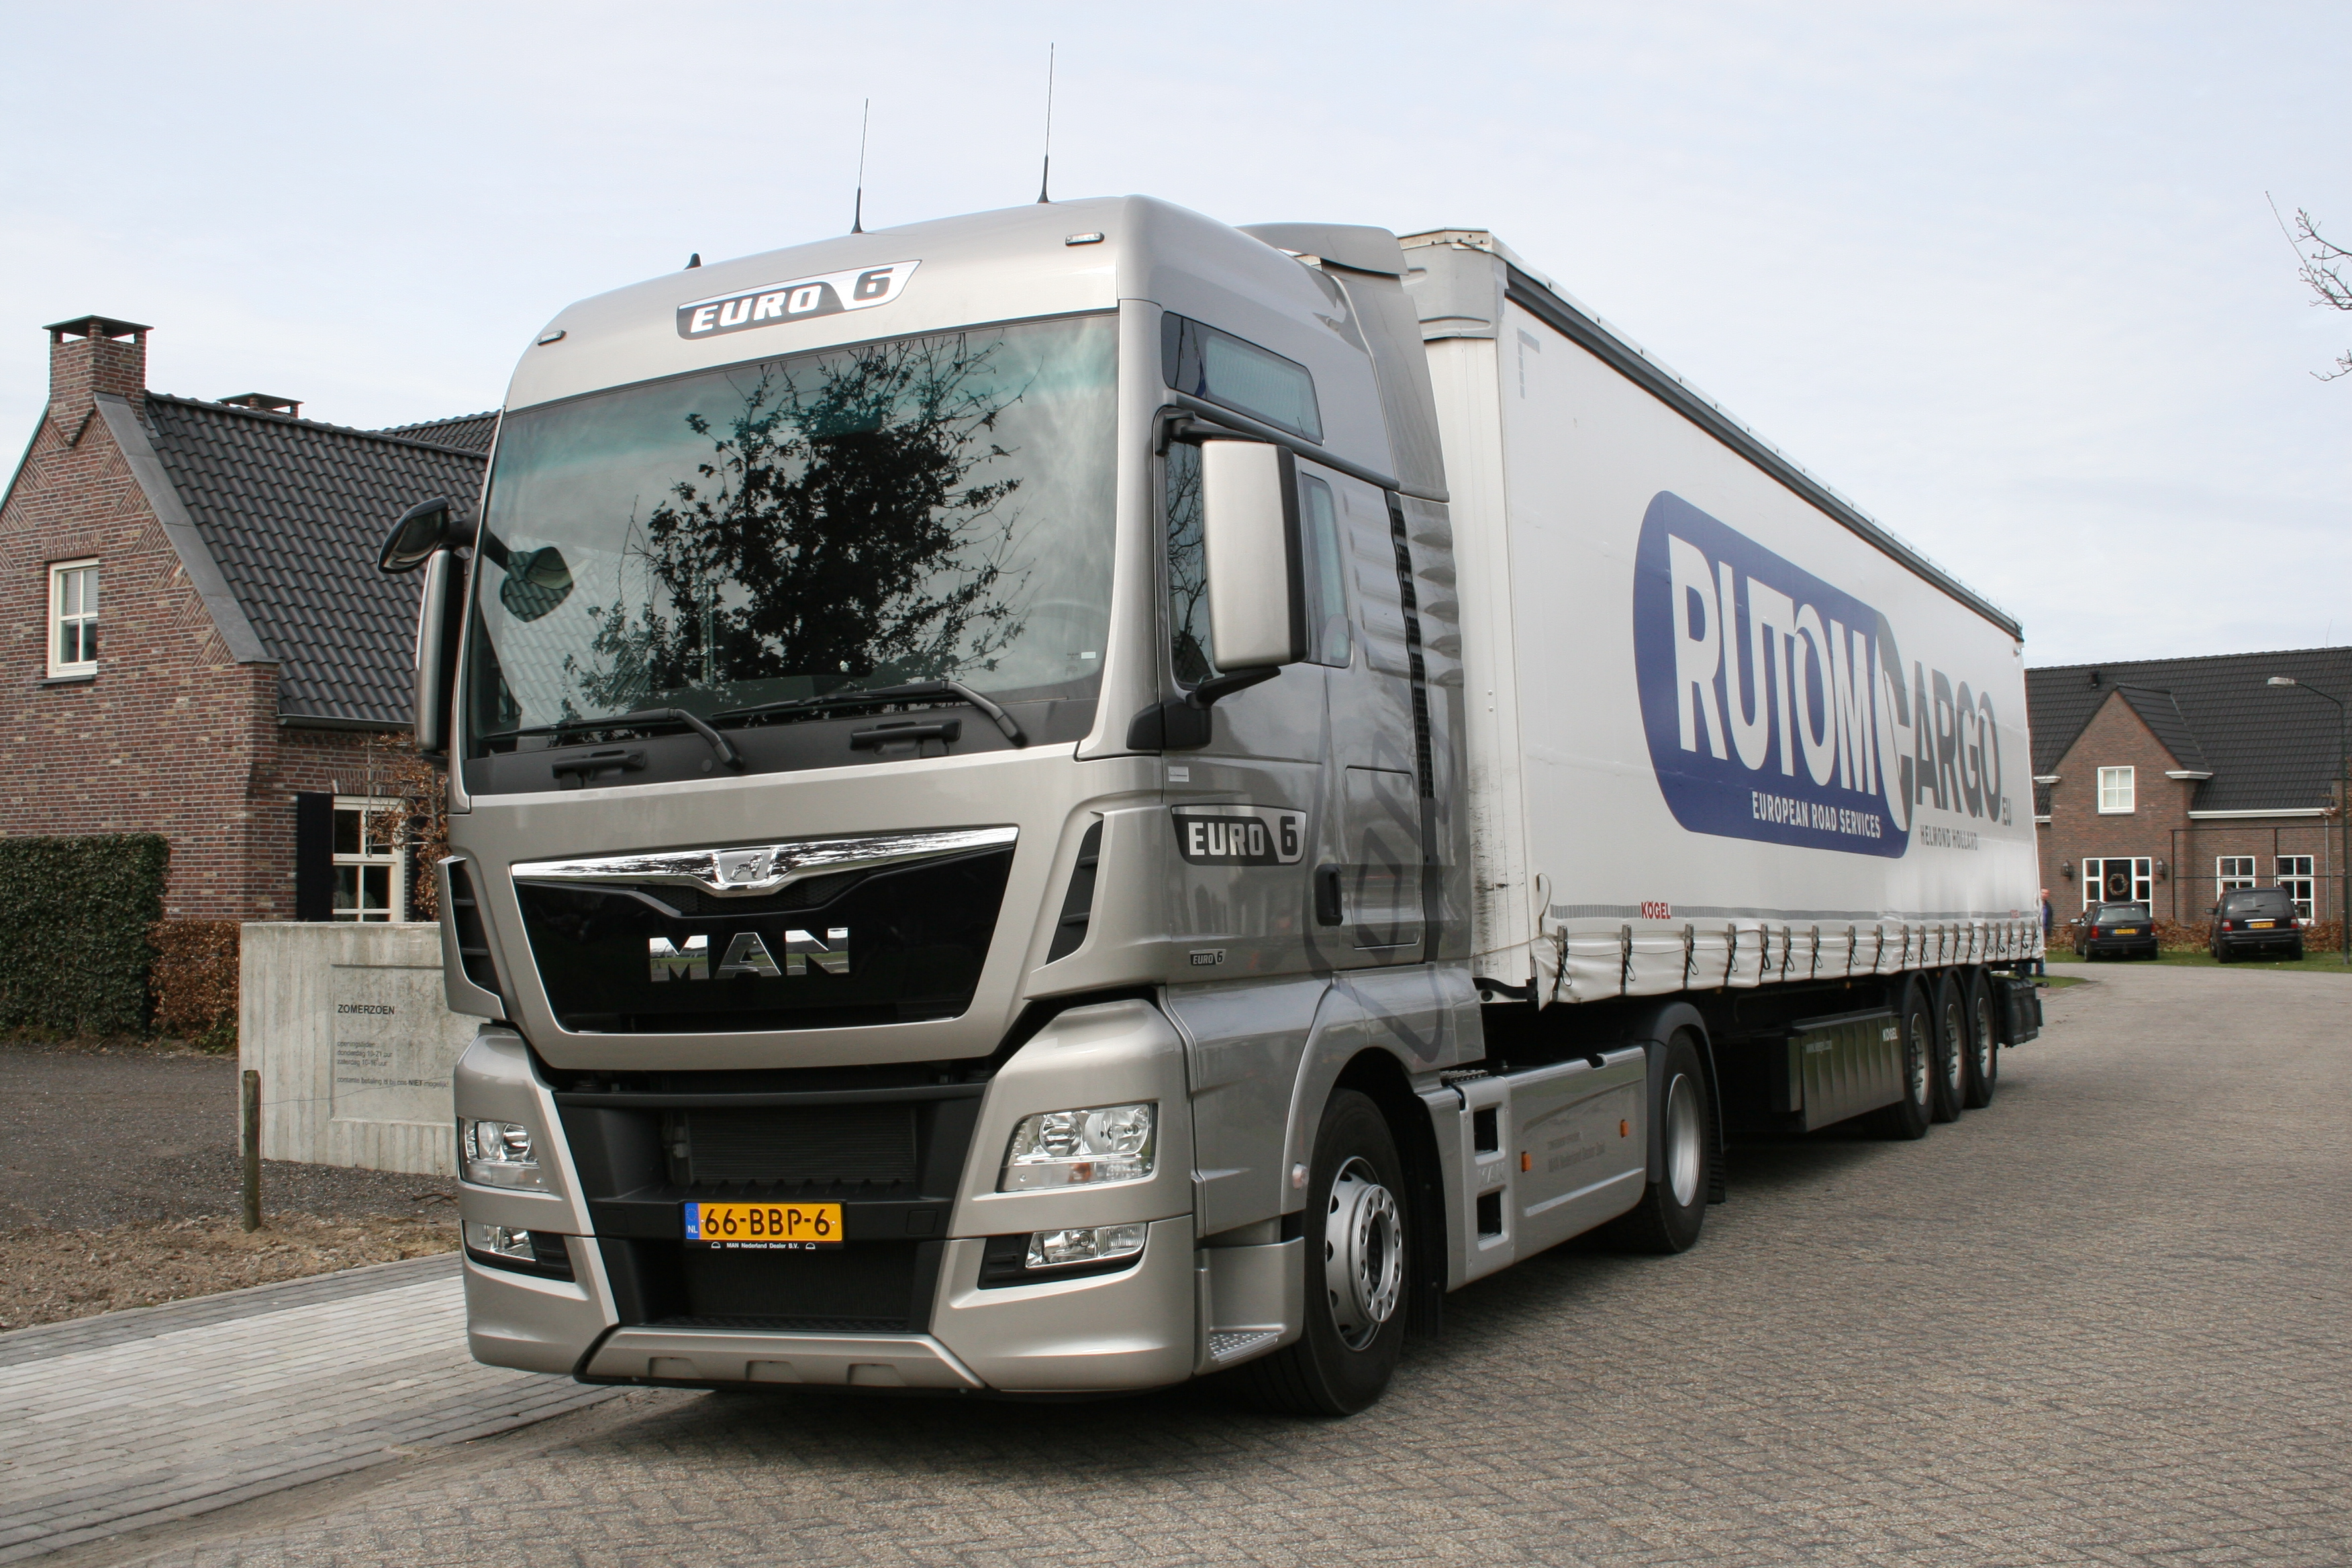 Man tgx 66bbp6 man chauffeursdag milheeze 2013 photo album for Domon man 2013